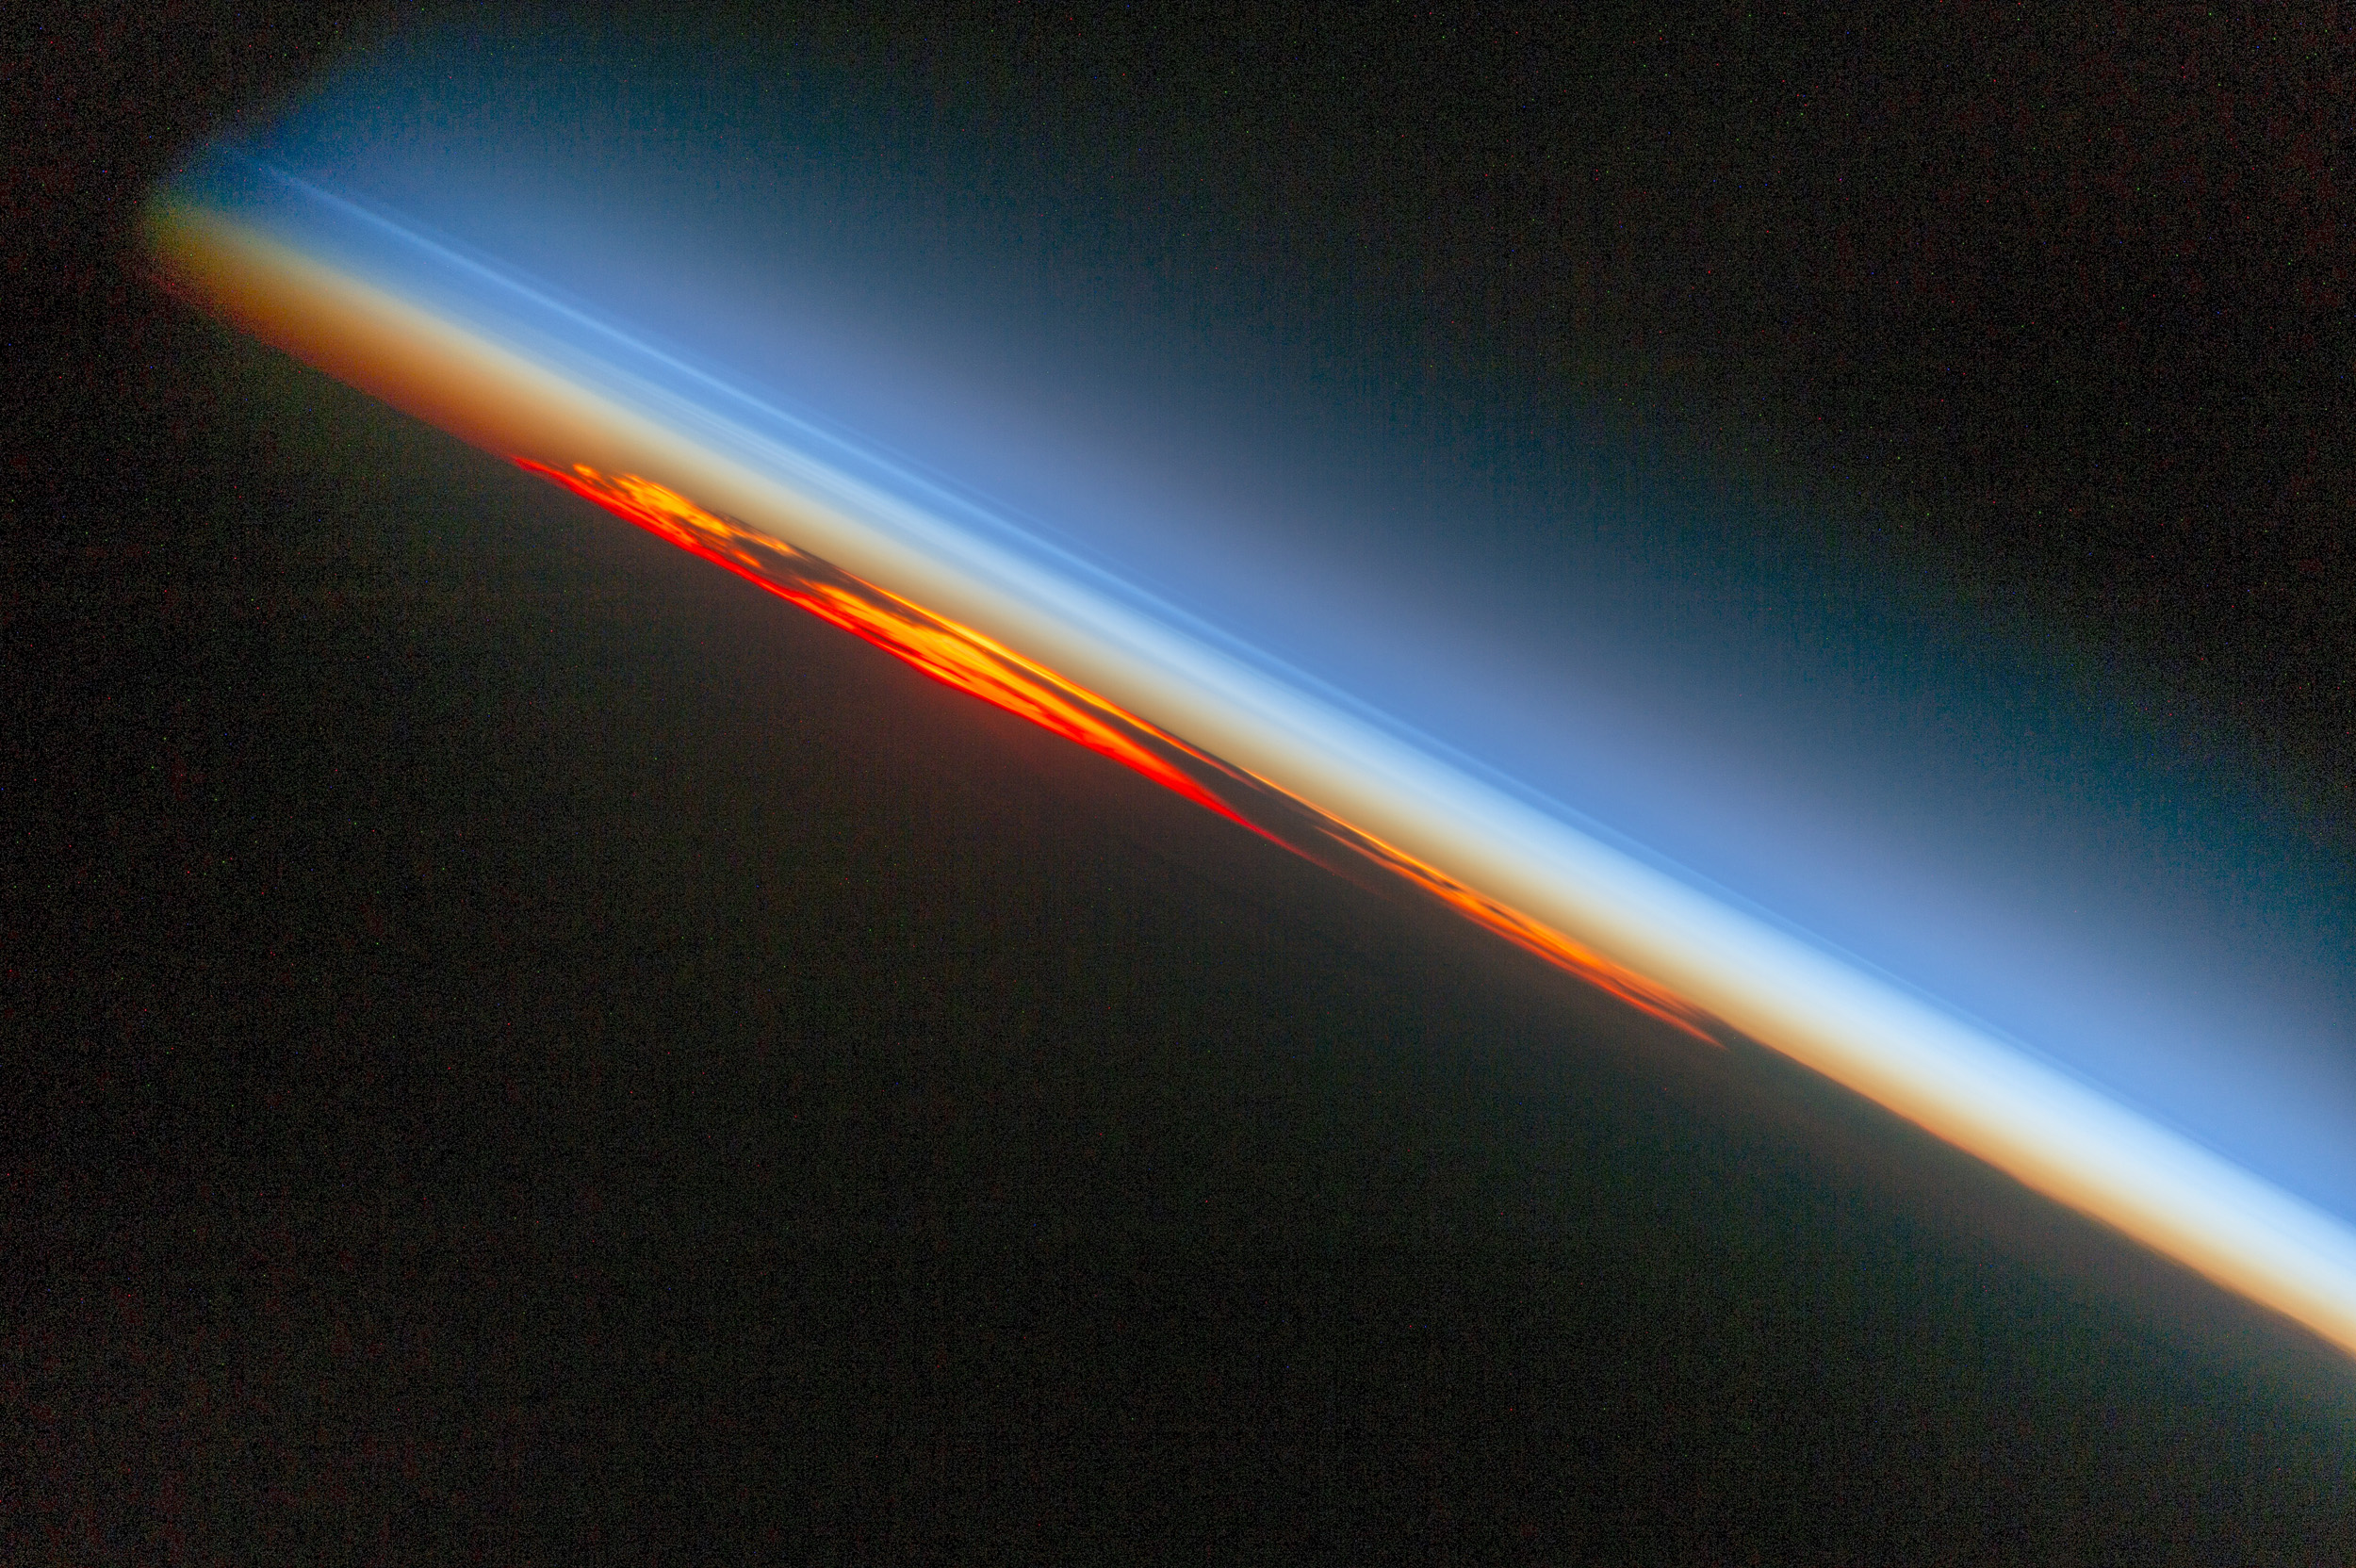 An astronaut aboard the International Space Station photographed a fiery sunset that looks like a vast sheet of flame.